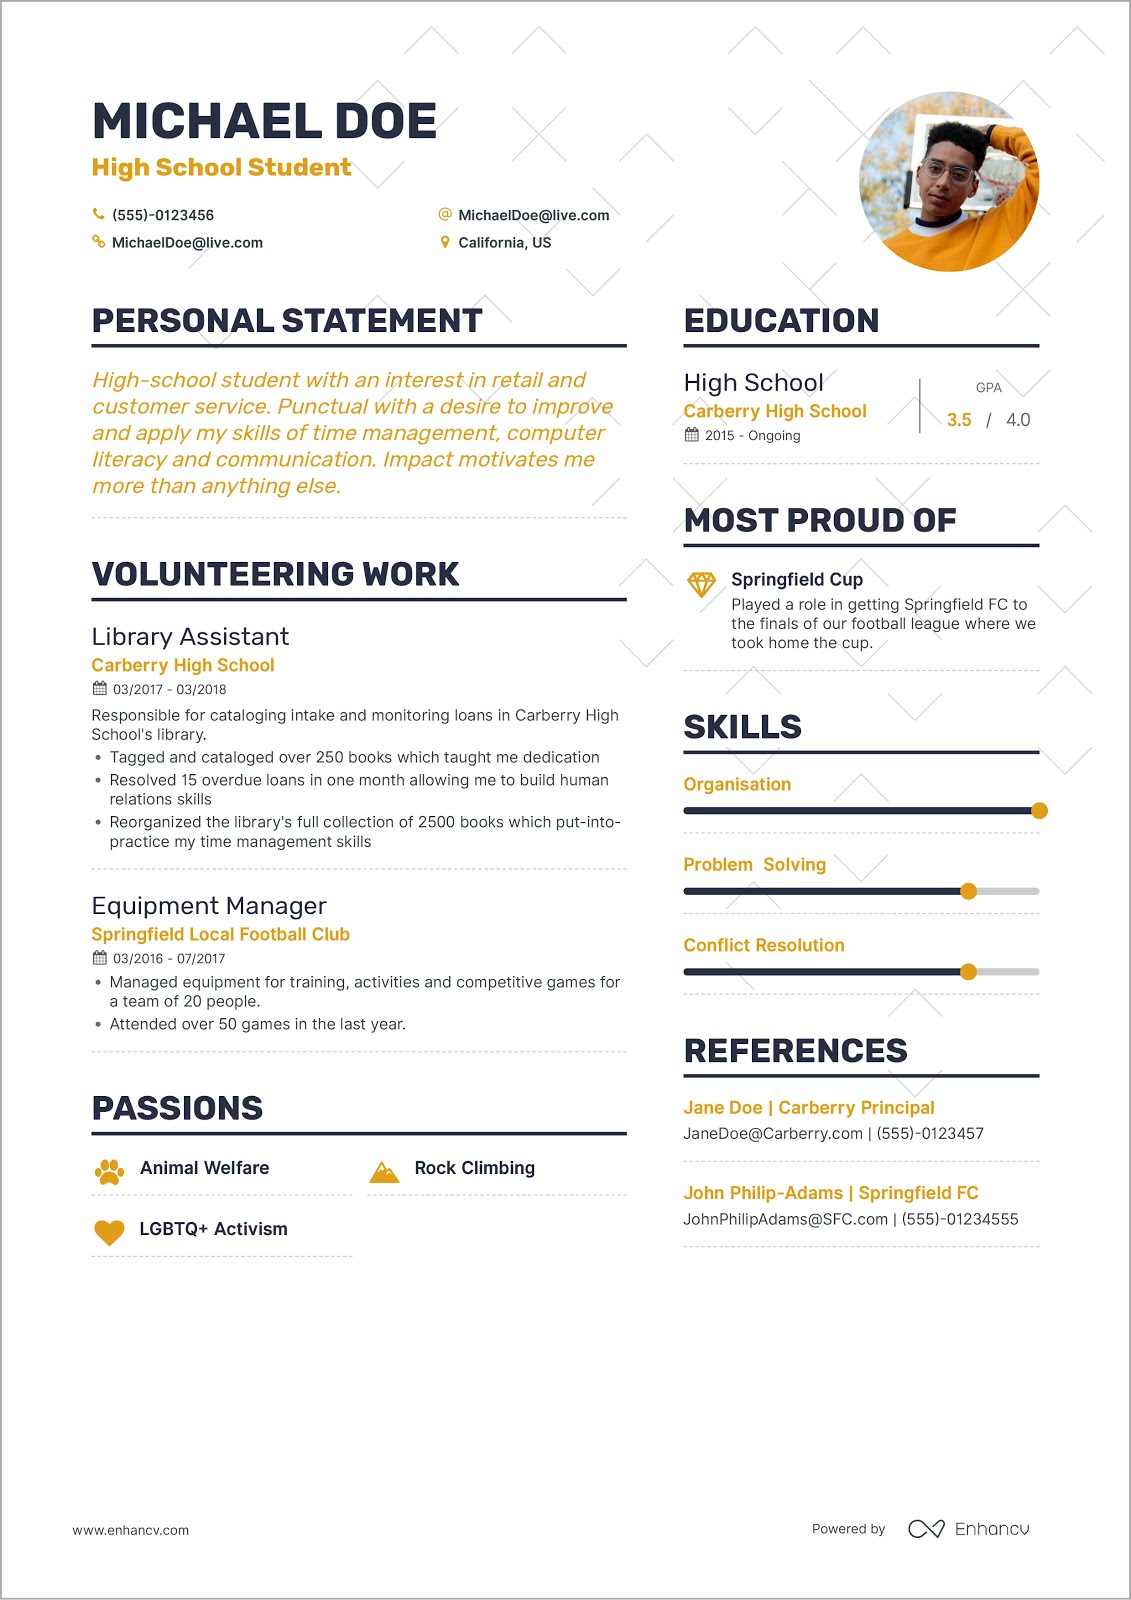 Enhancv How To Write Your First Job Resume First job resume